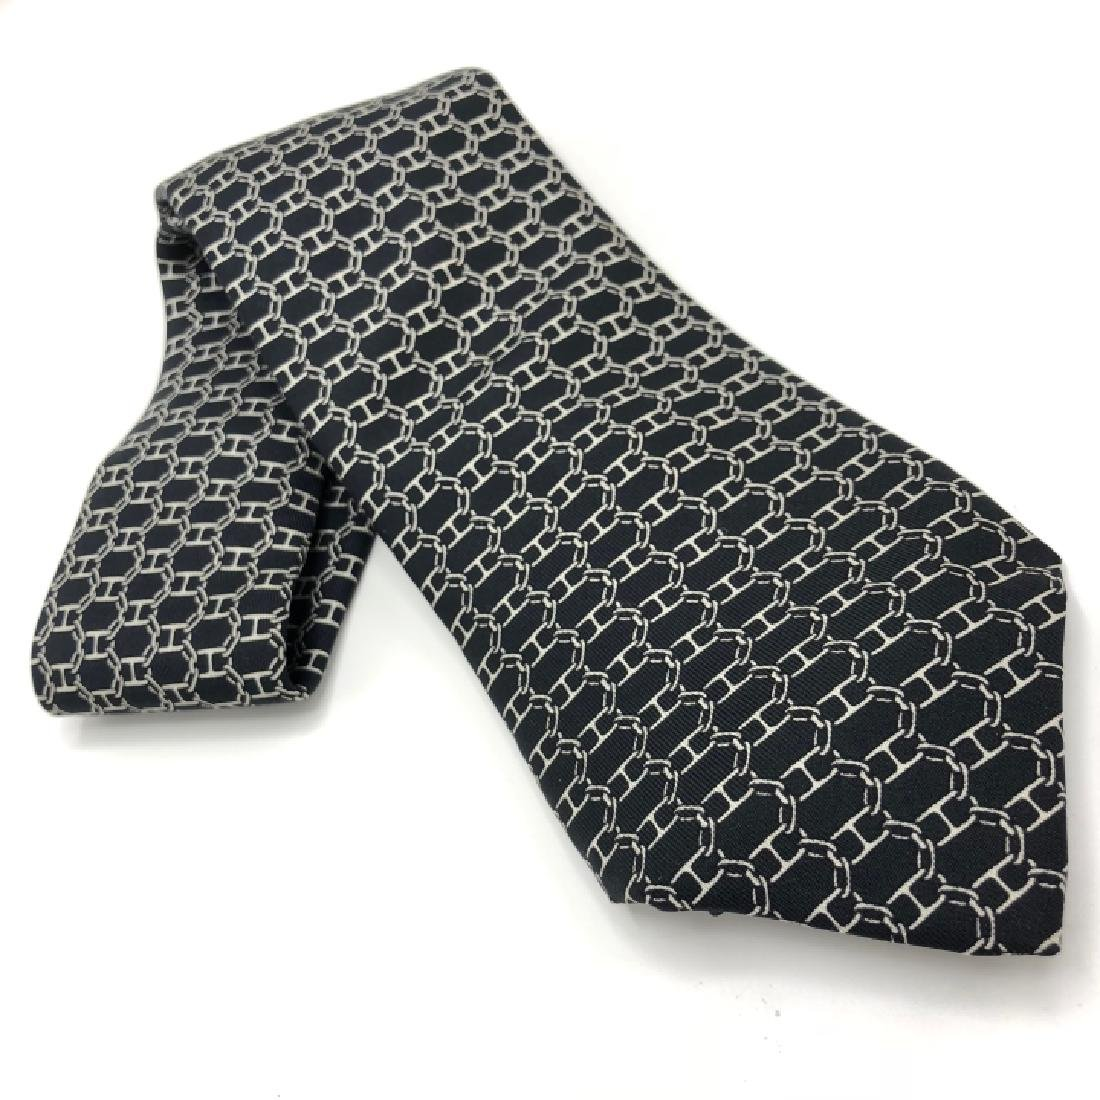 Vintage Authentic Hermes Black & White Men's Tie